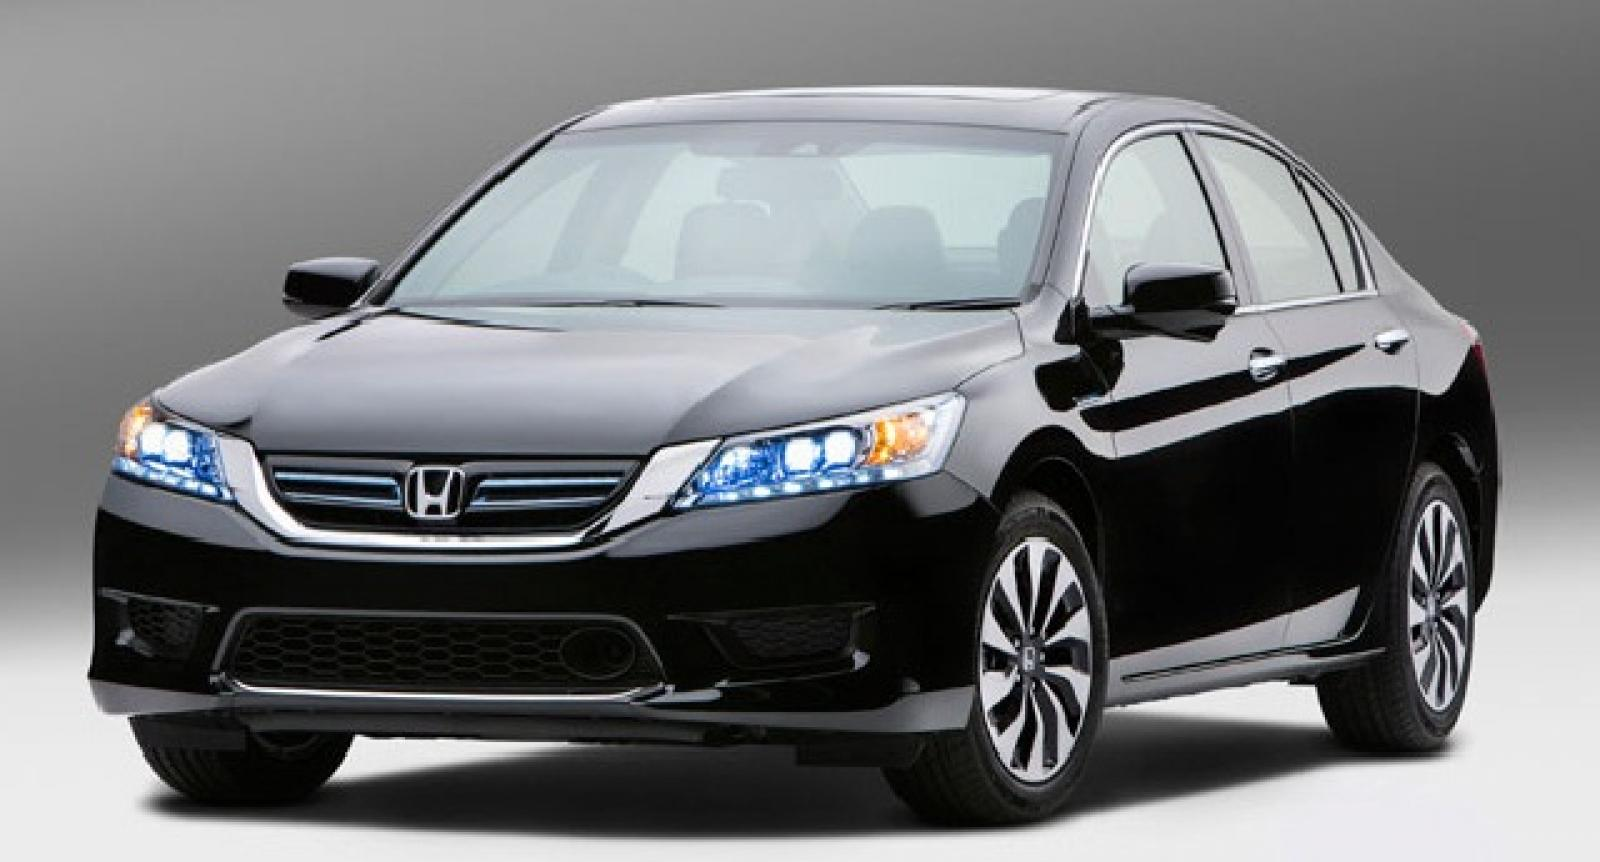 2015 honda accord hybrid information and photos zombiedrive. Black Bedroom Furniture Sets. Home Design Ideas